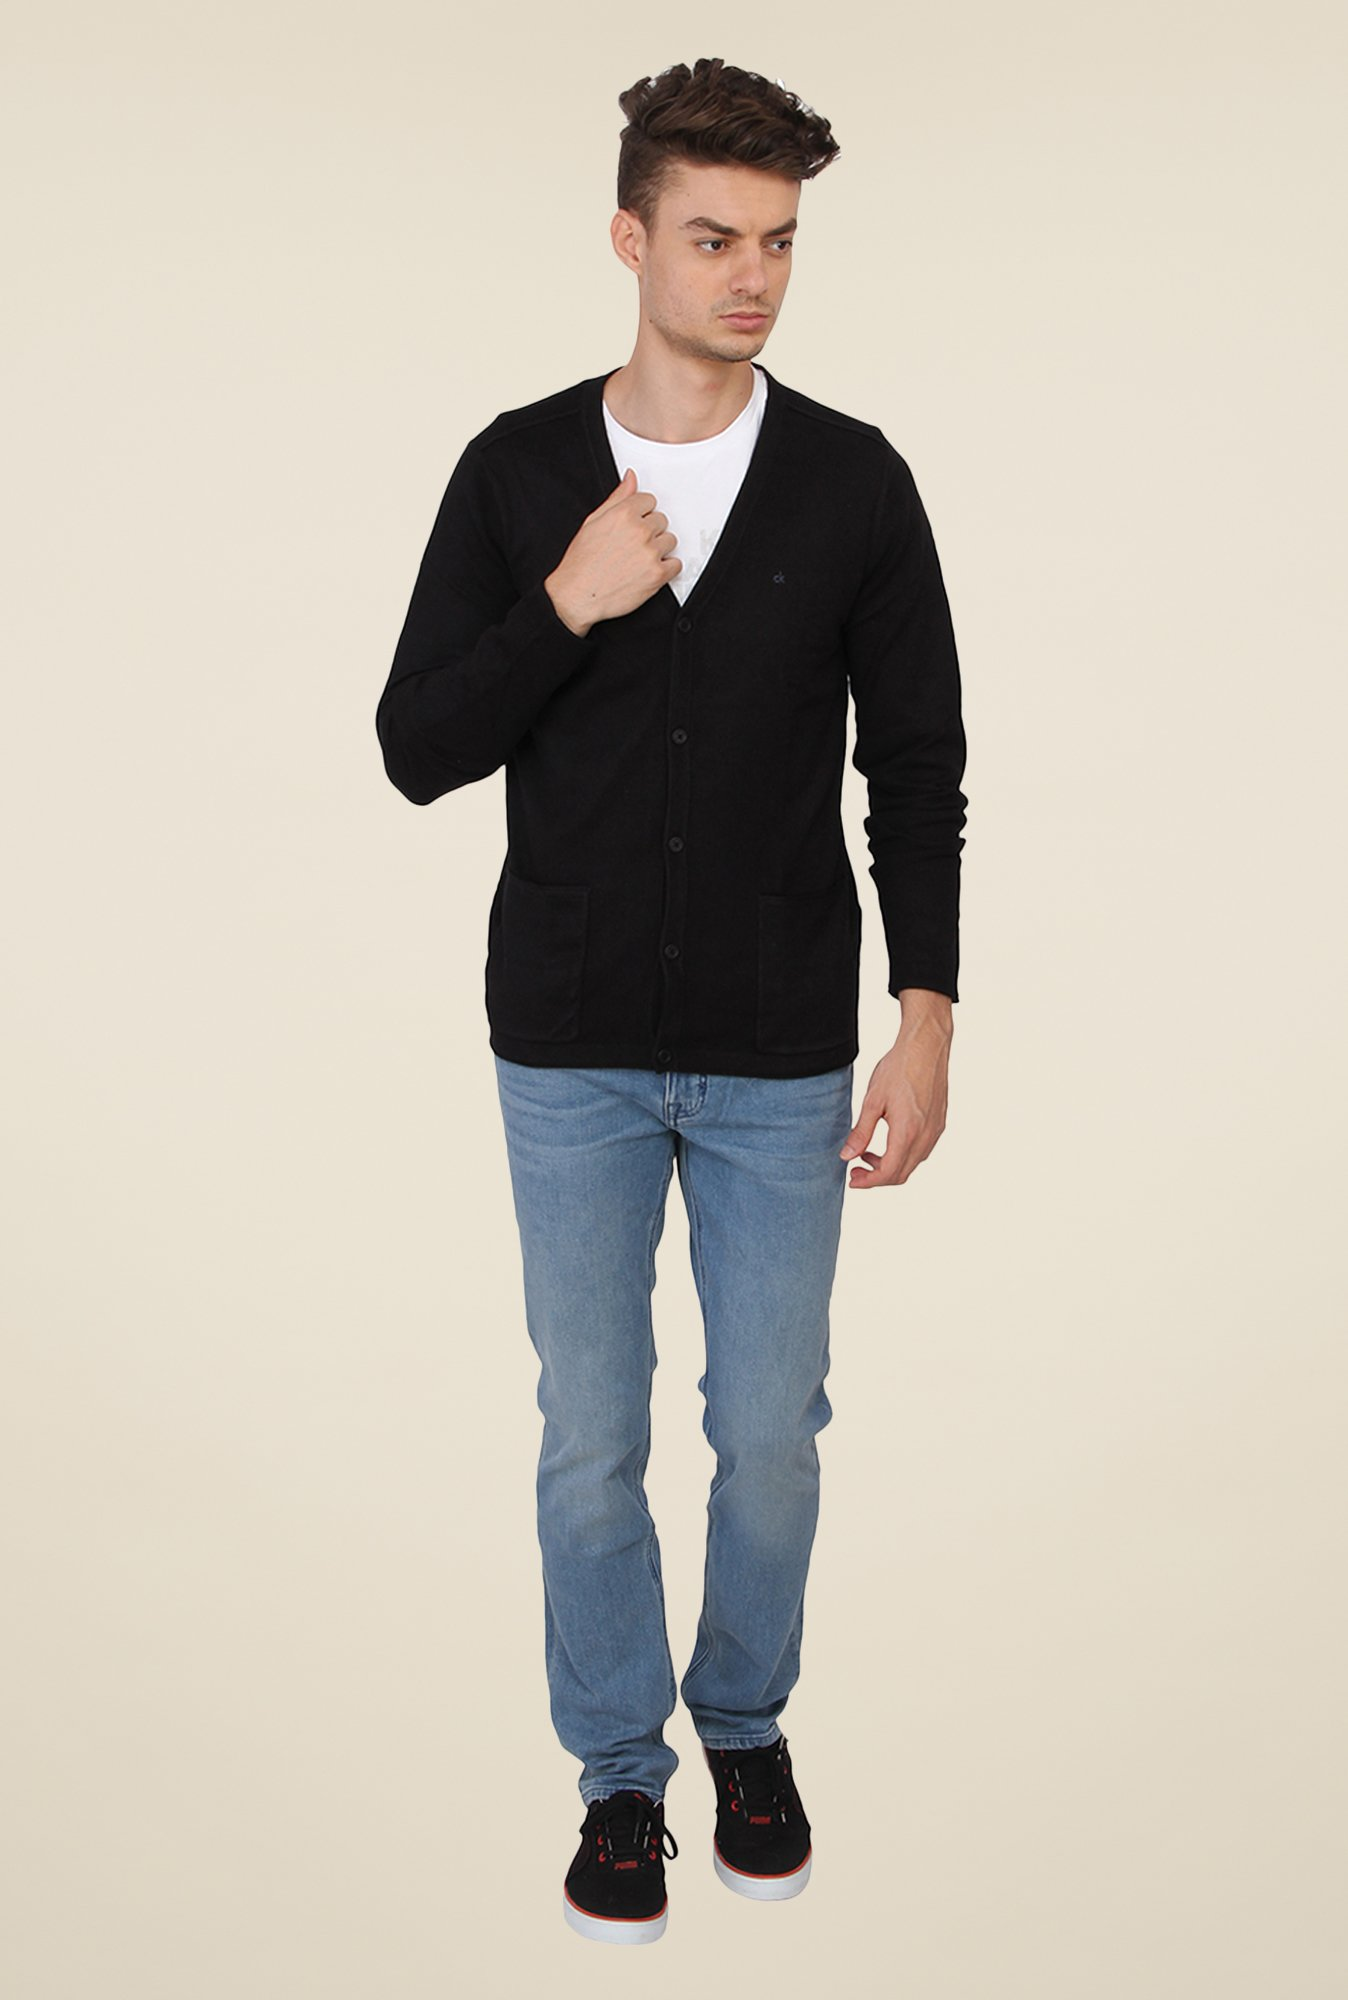 Calvin Klein Solid Black Sweater